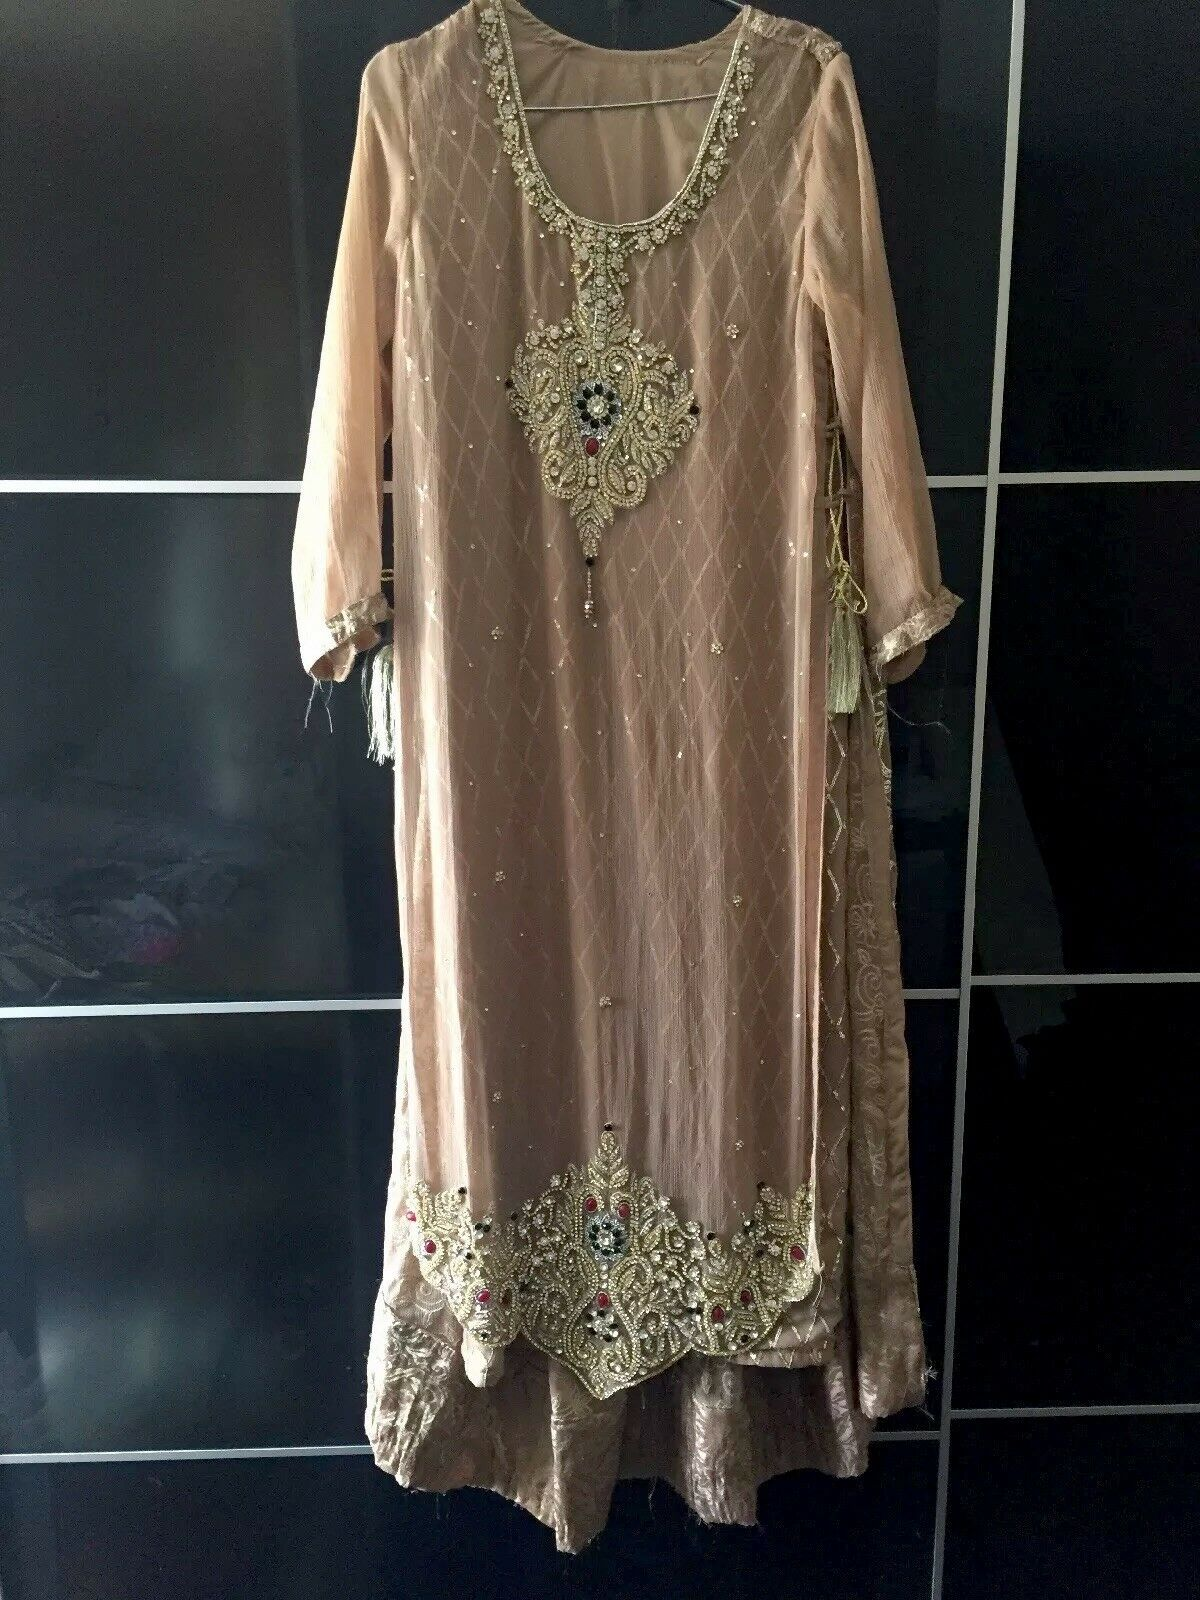 Rare Stunning South Asian embroidered Long Kameez Dress Size M Oversized look